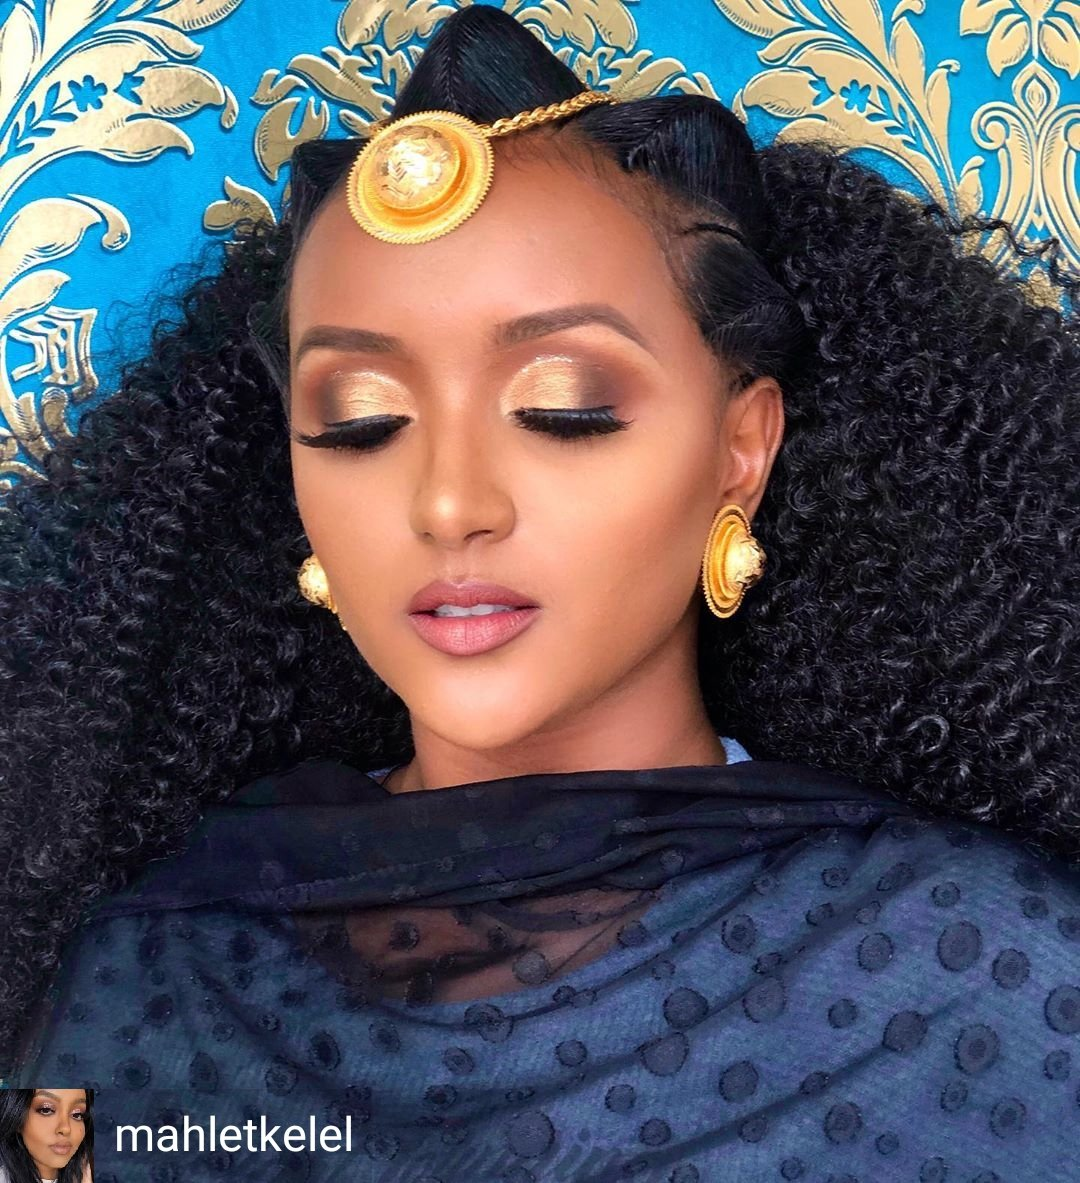 Accessories & Make Up the #EastAfricanWay @mahletkelel  @yem_fryat  Location @mahisbeautybar  Get inspiration for any occasion on the #AfriqOkin app, free on Google play & Apple app store. Download   http:// onelink.to/aptvqj      #AfricanFashionApp #AfricanFashion  #MakeupByMahlet<br>http://pic.twitter.com/eljRkQ1lyh